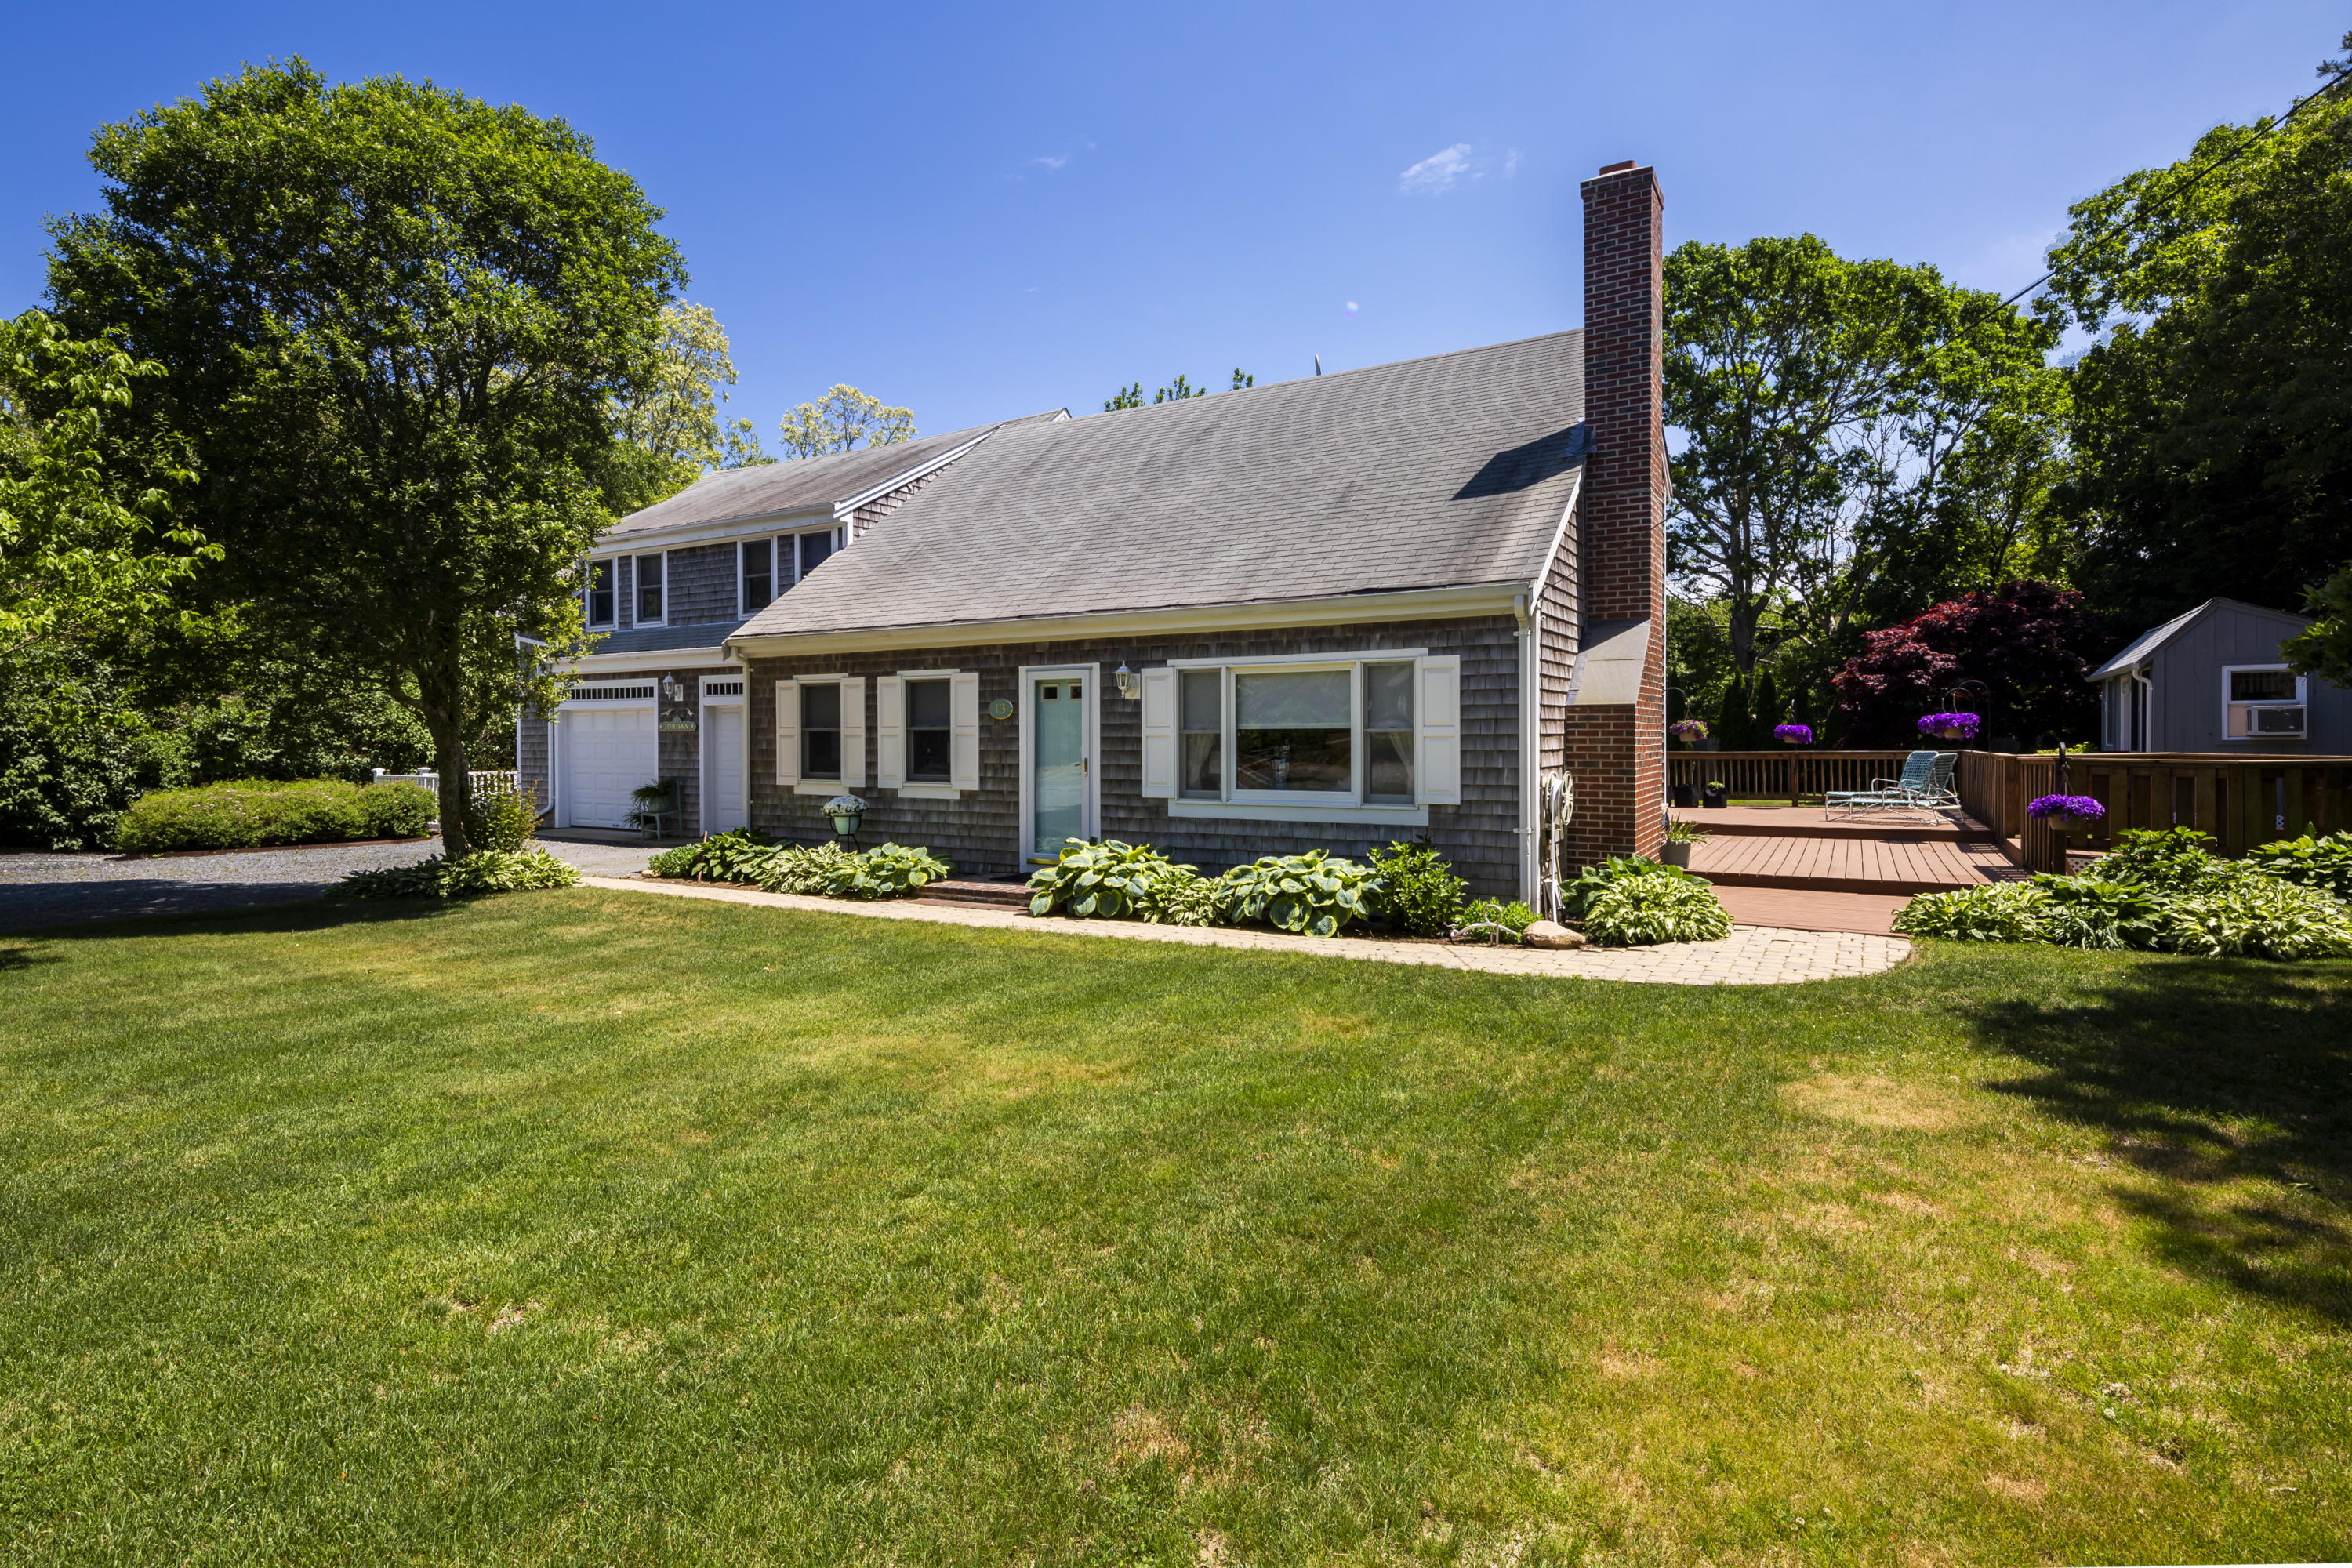 13 Captain Doanes Way, Orleans MA, 02653